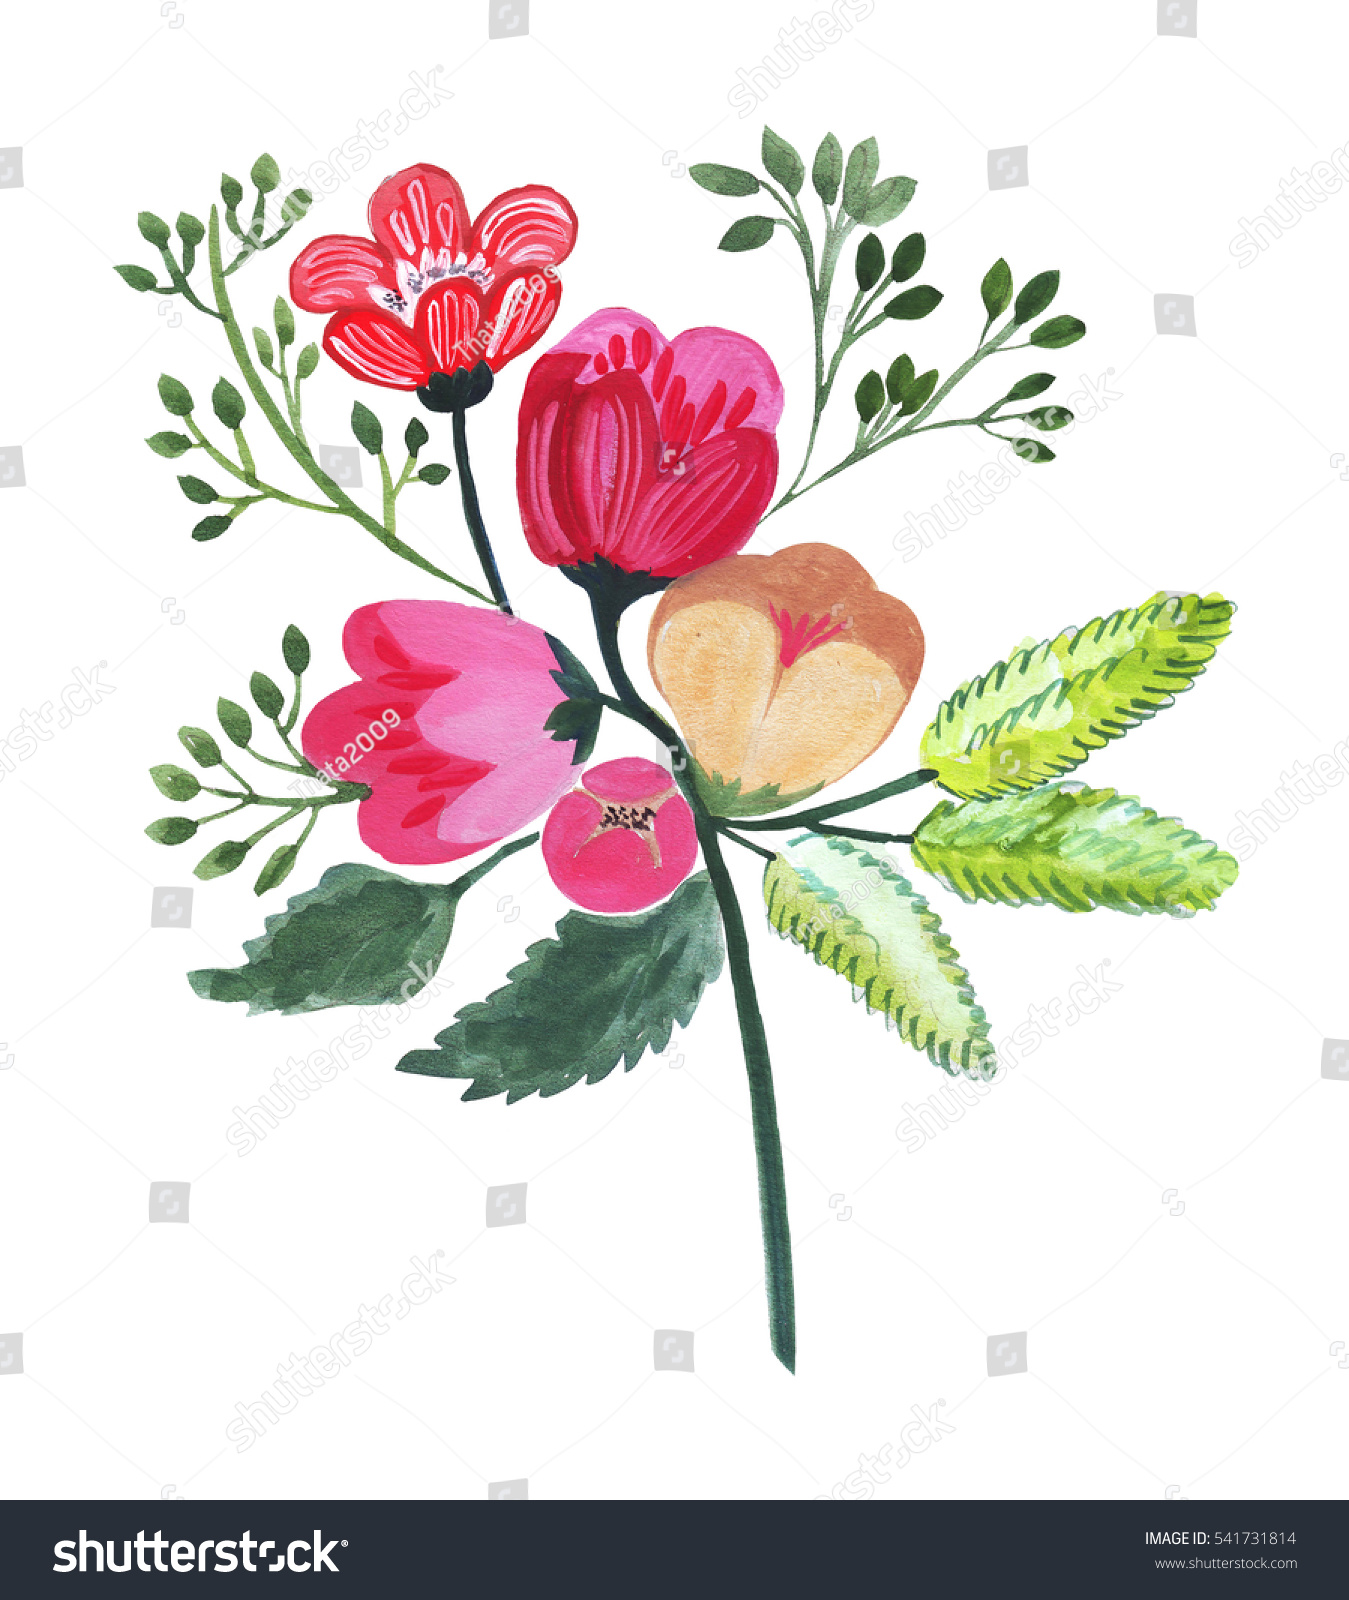 Illustration Pencil Drawing Bouquet Flowers Bright Stock ...